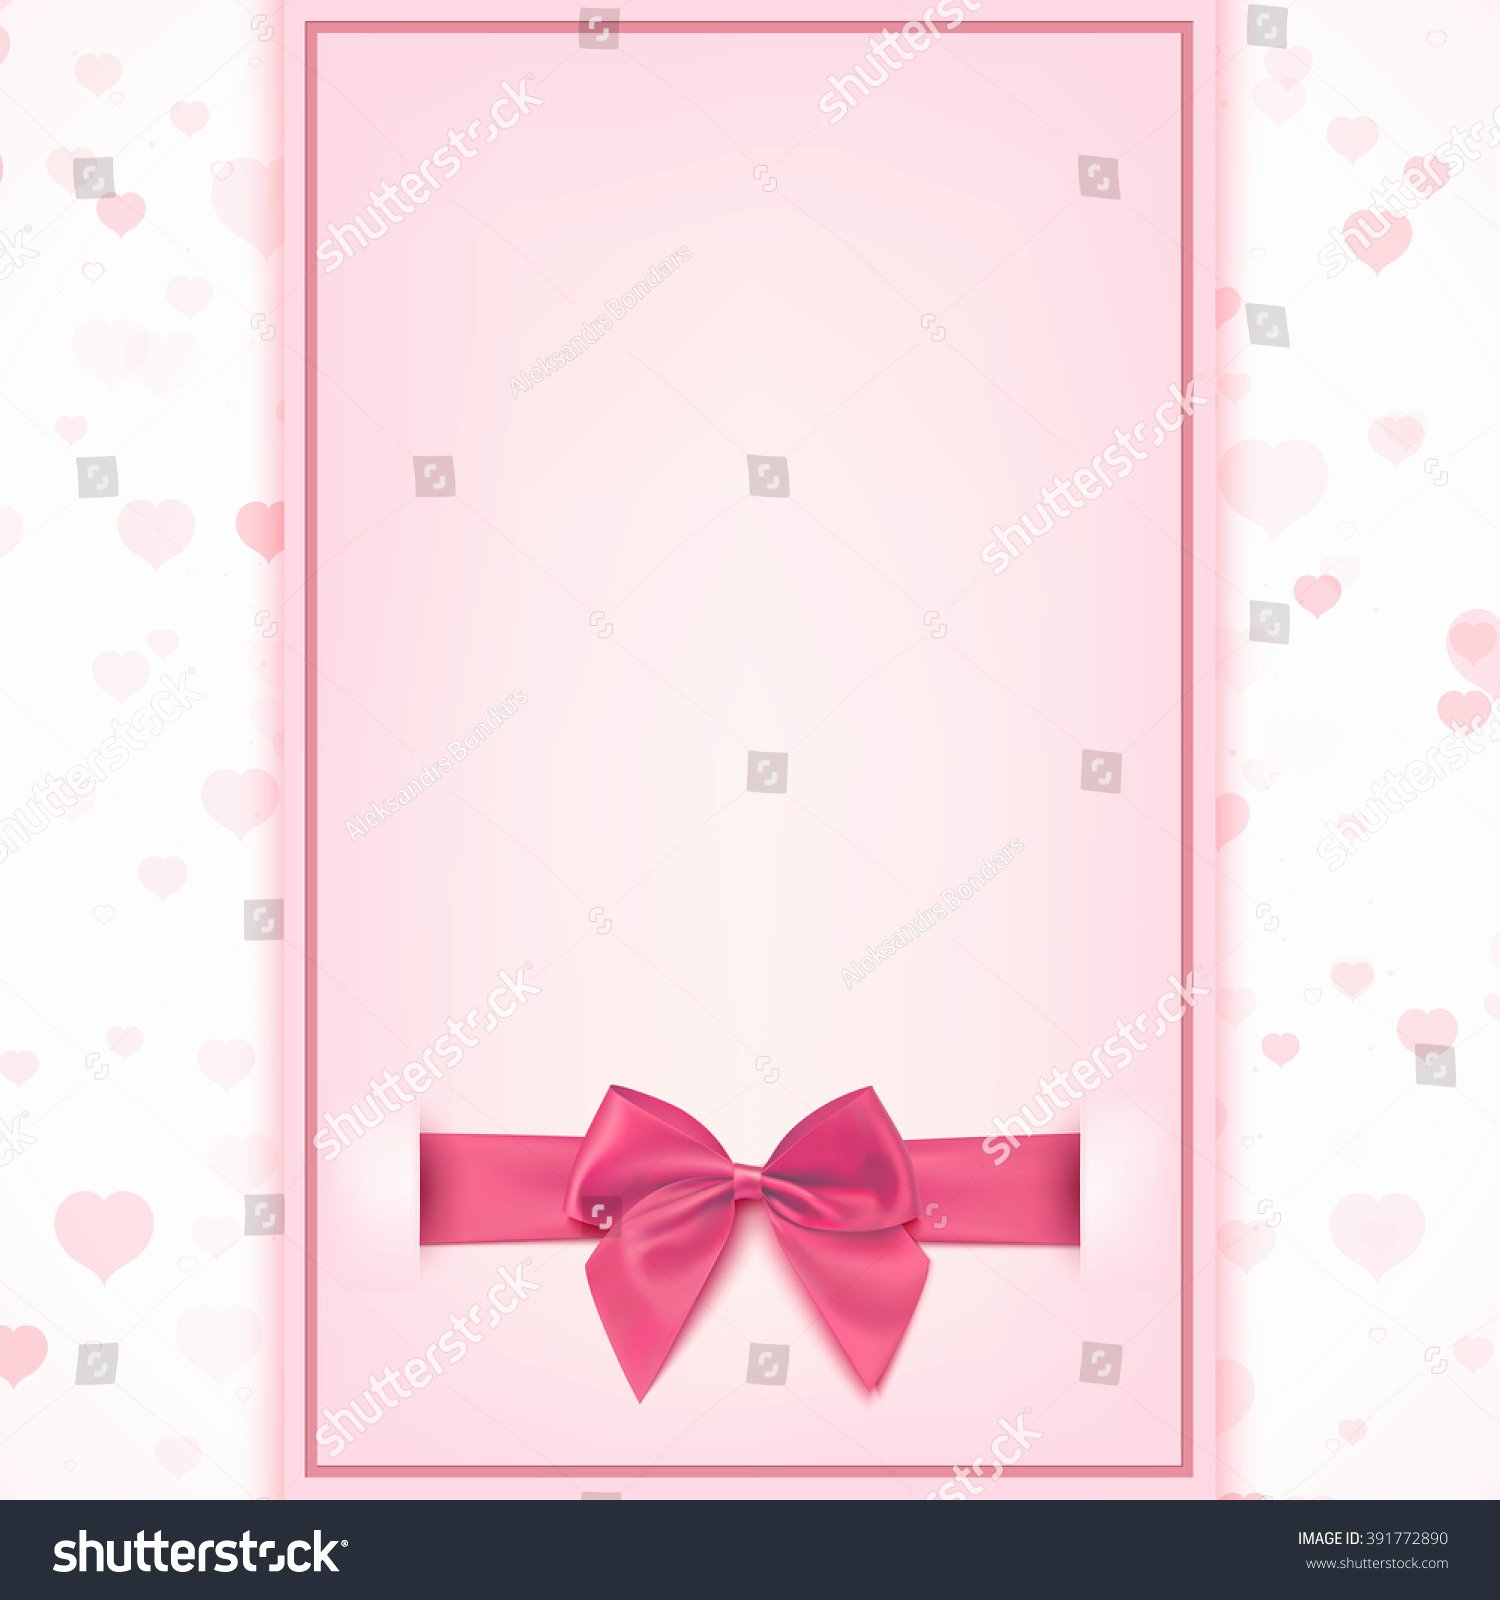 Baby Girl Announcement Template Elegant Blank Greeting Card Template Baby Girl Stock Illustration